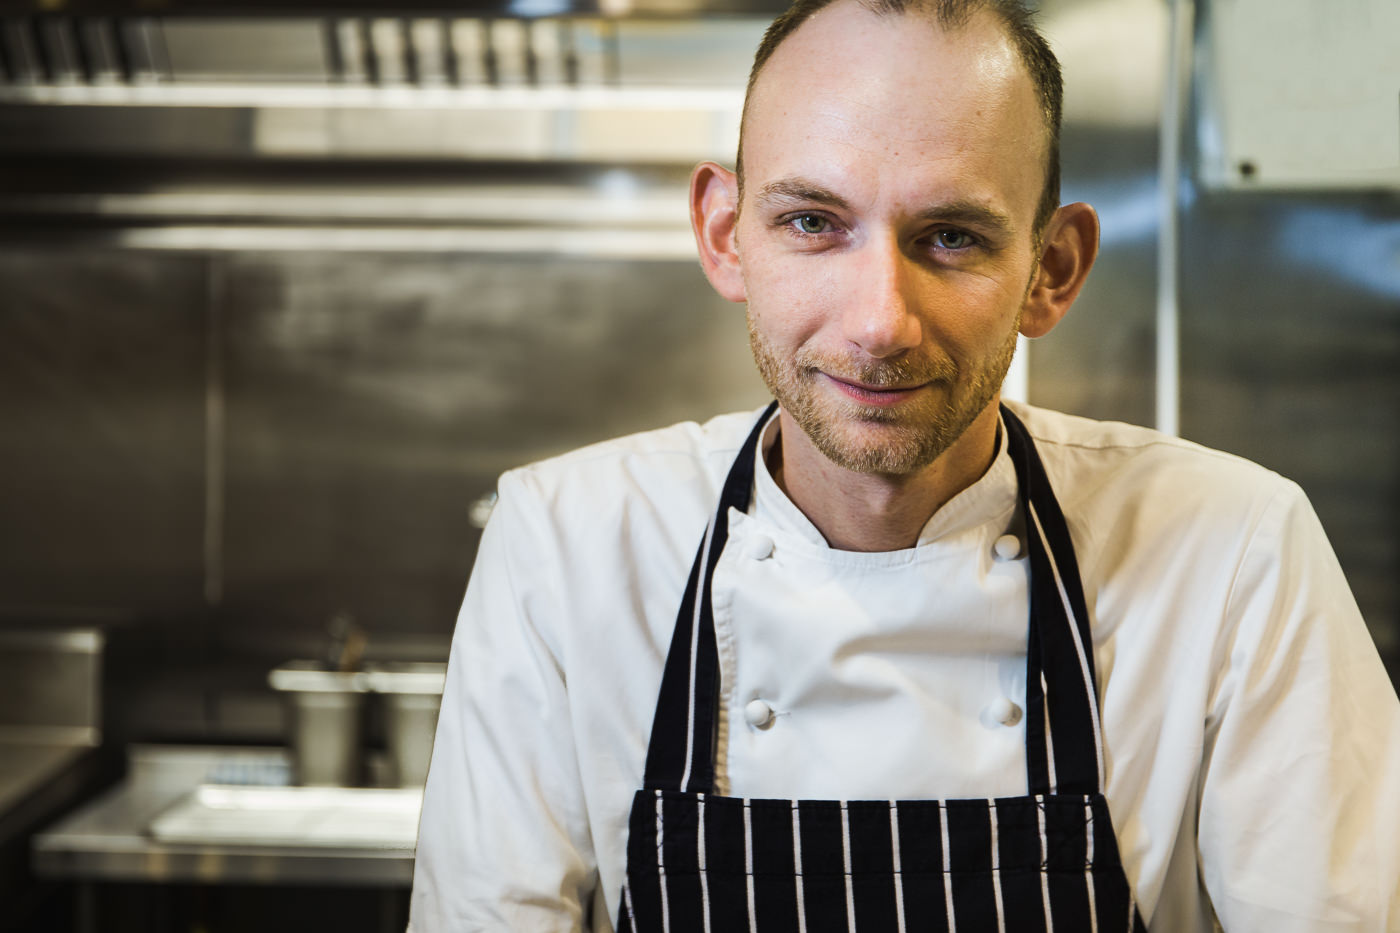 Environmental portrait of chef Stuart Collins, standing in his kitchen at restaurant Docket 32, looking straight to camera in chefs whites and apron